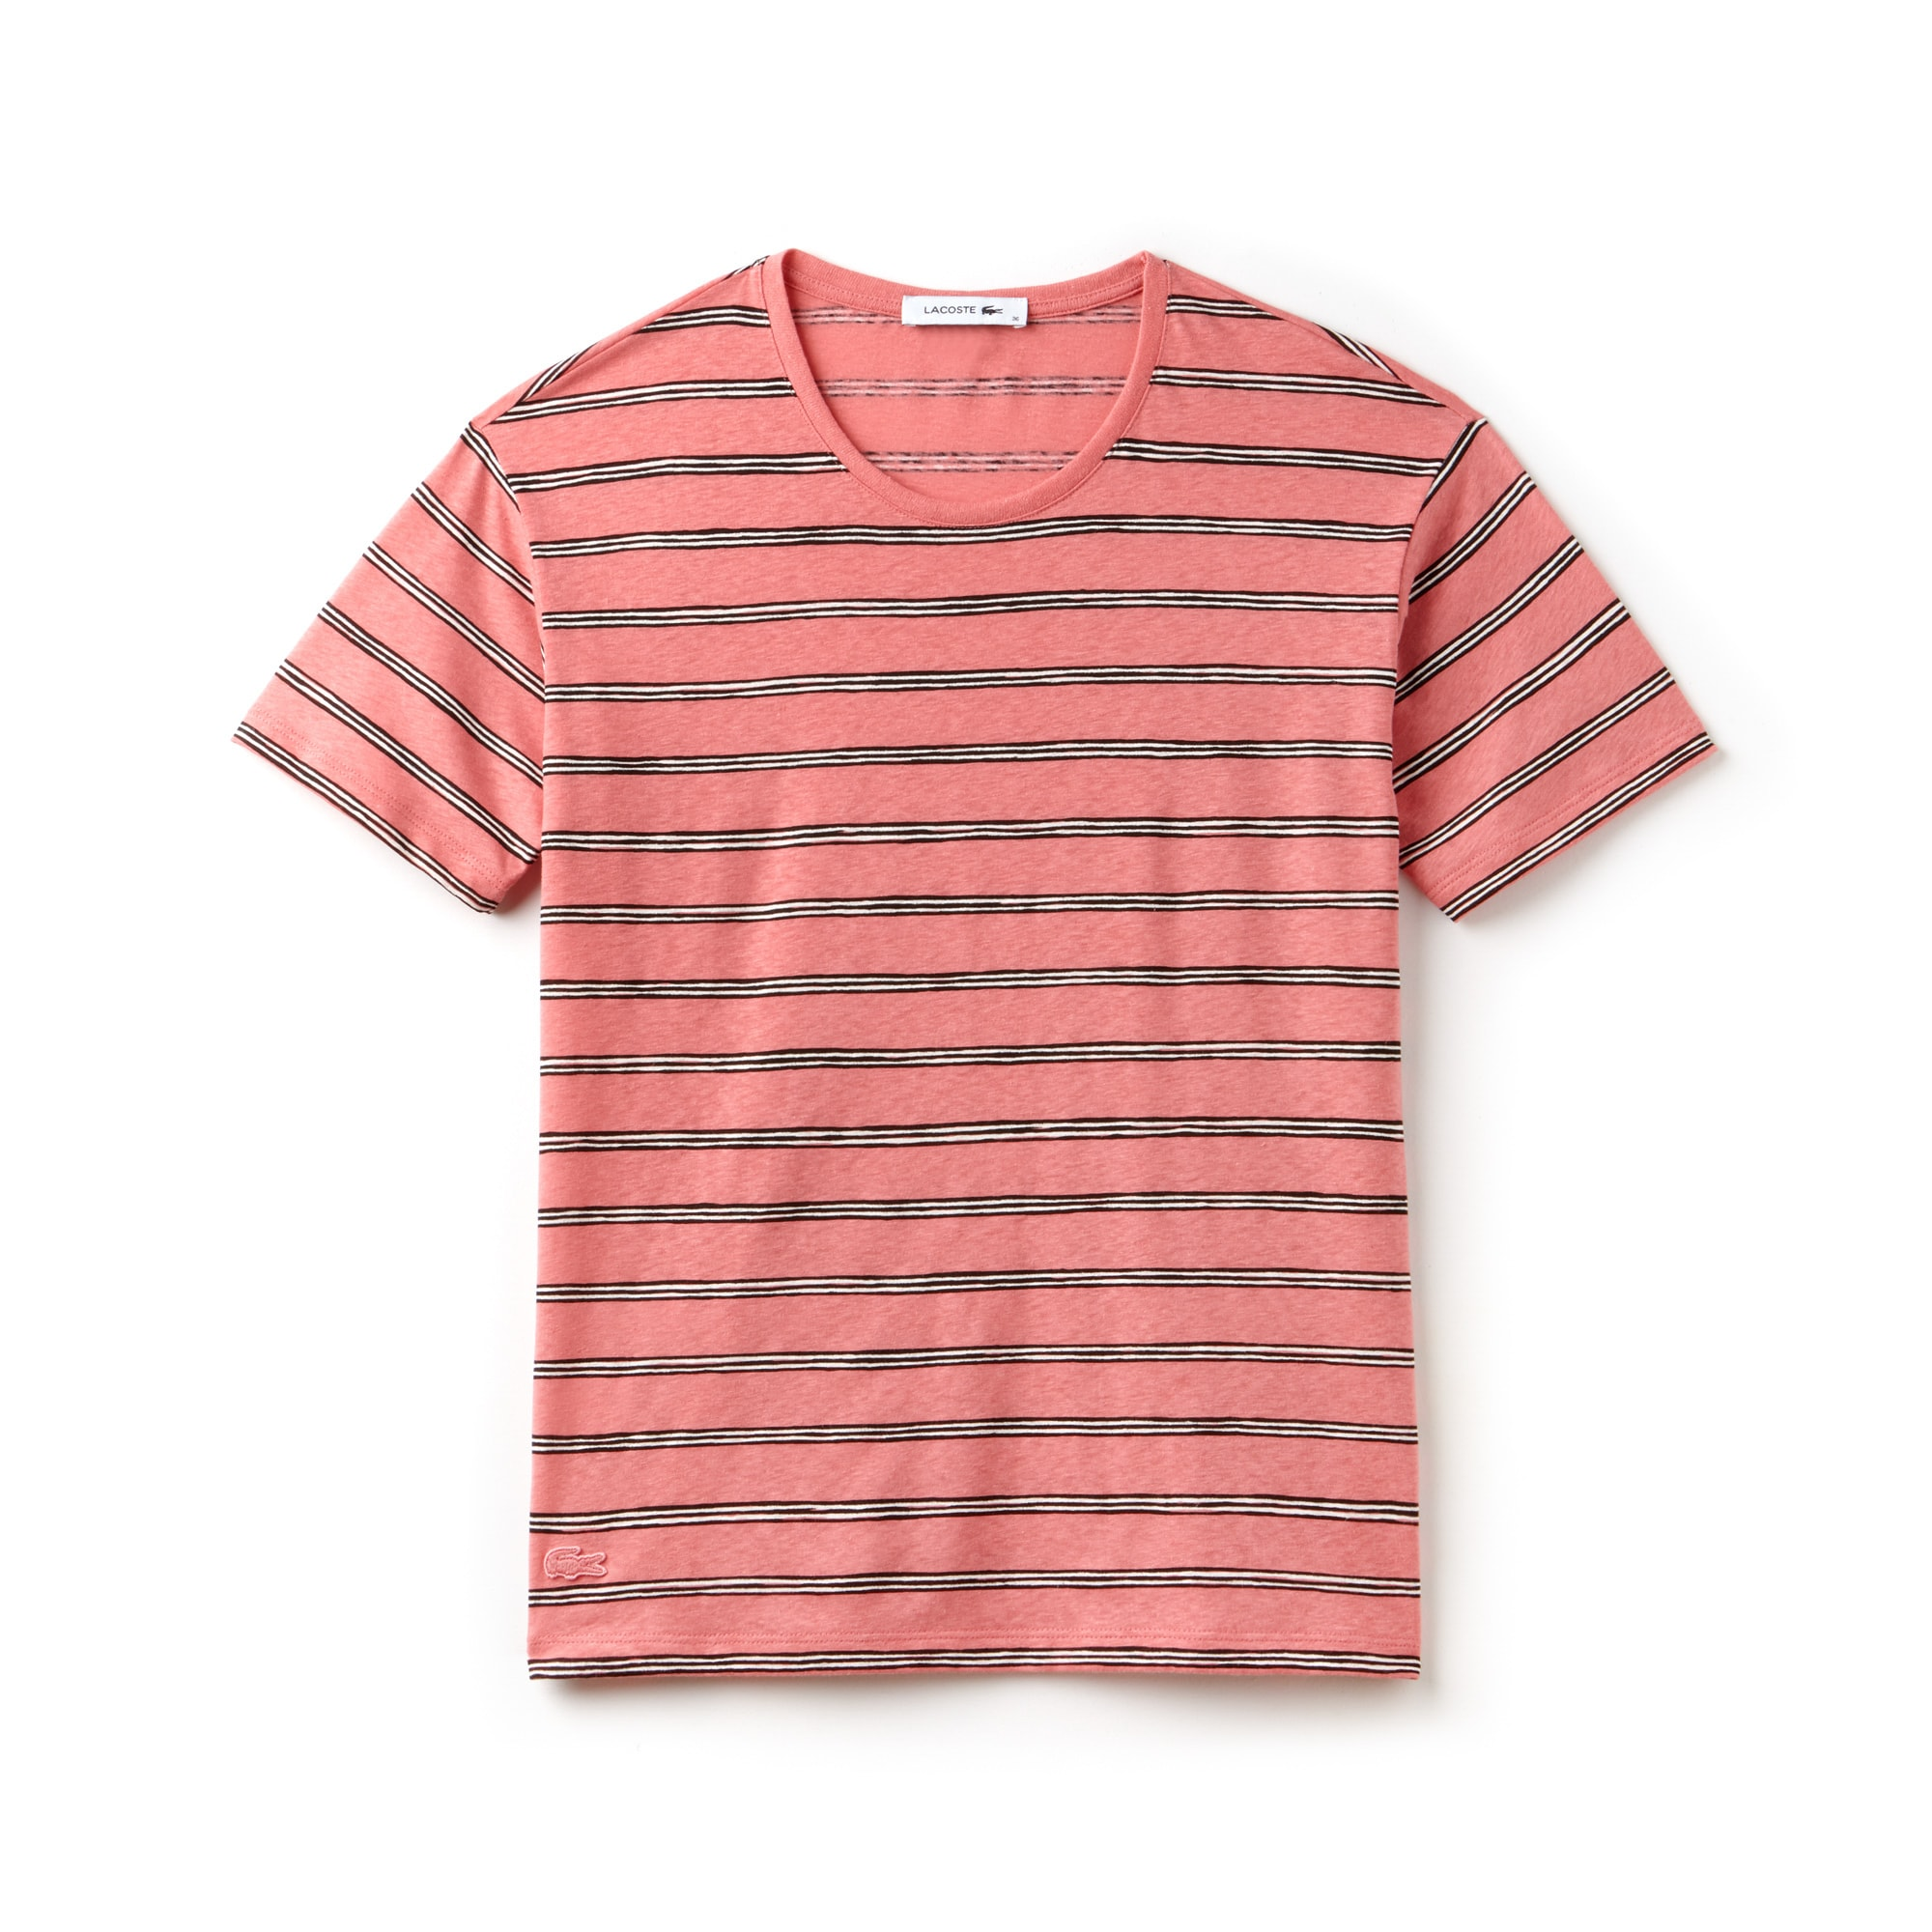 Women's Cotton And Linen T-Shirt